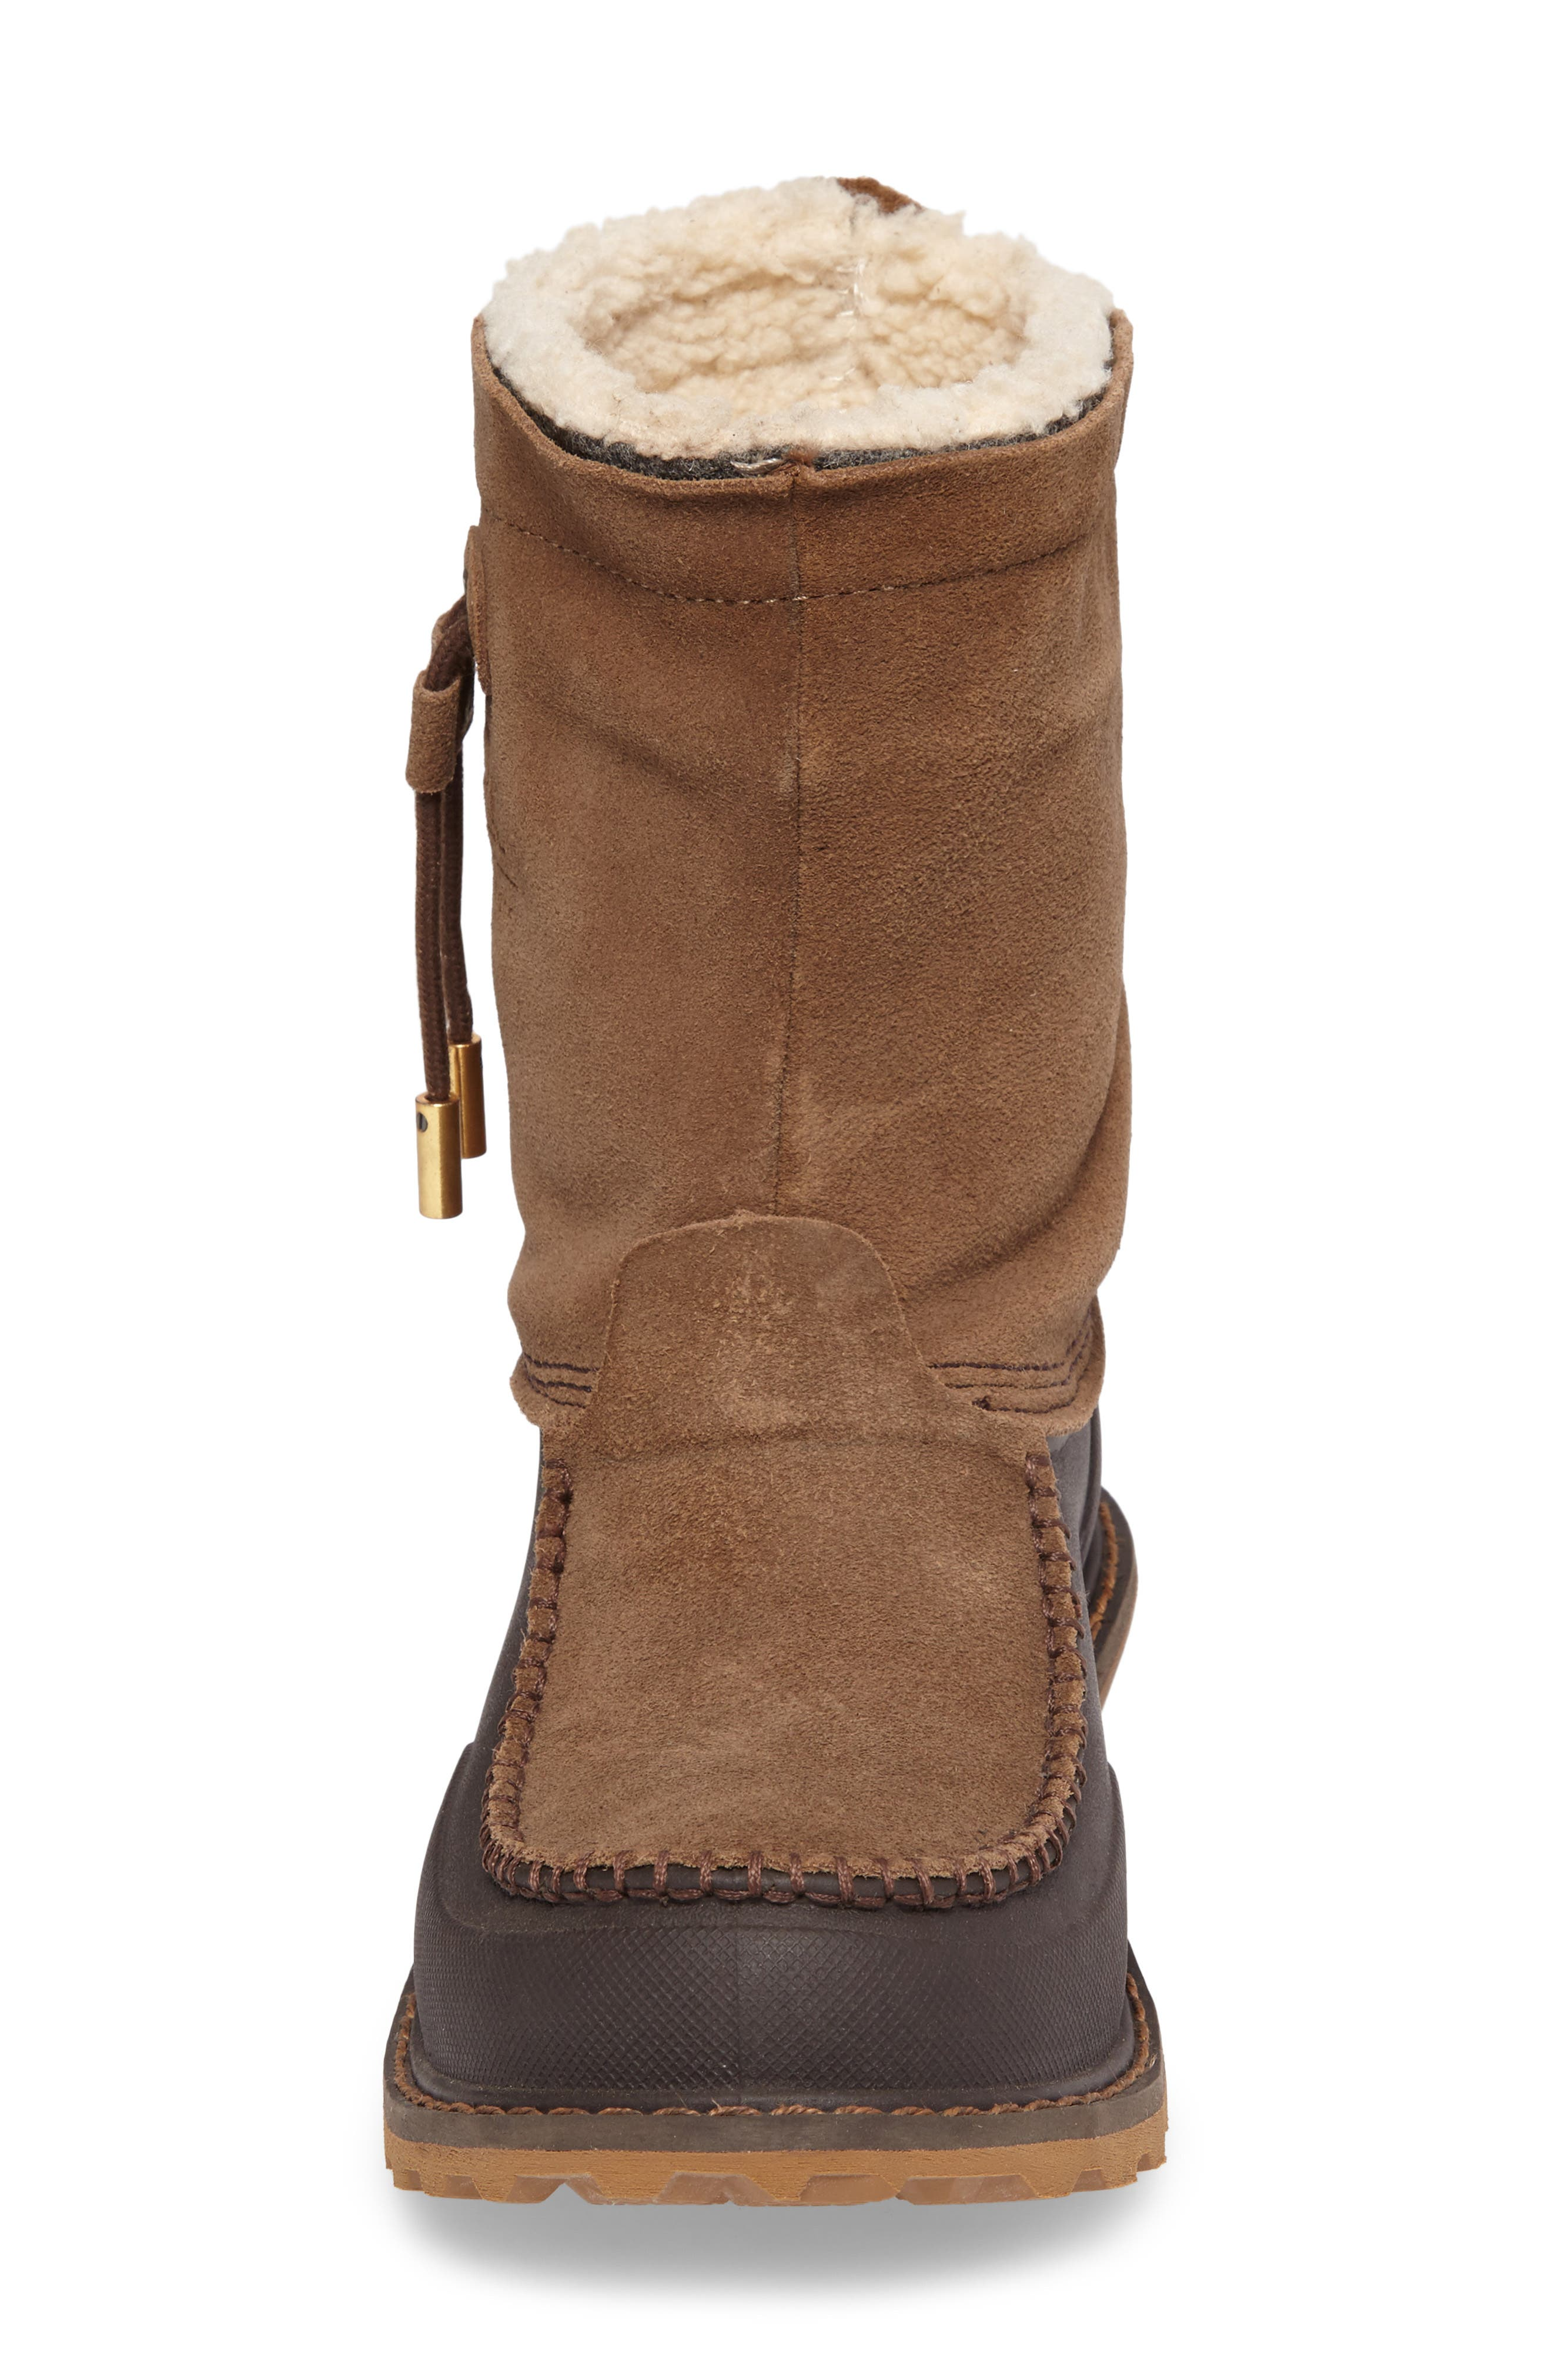 Fully Wooly Waterproof Winter Boot,                             Alternate thumbnail 8, color,